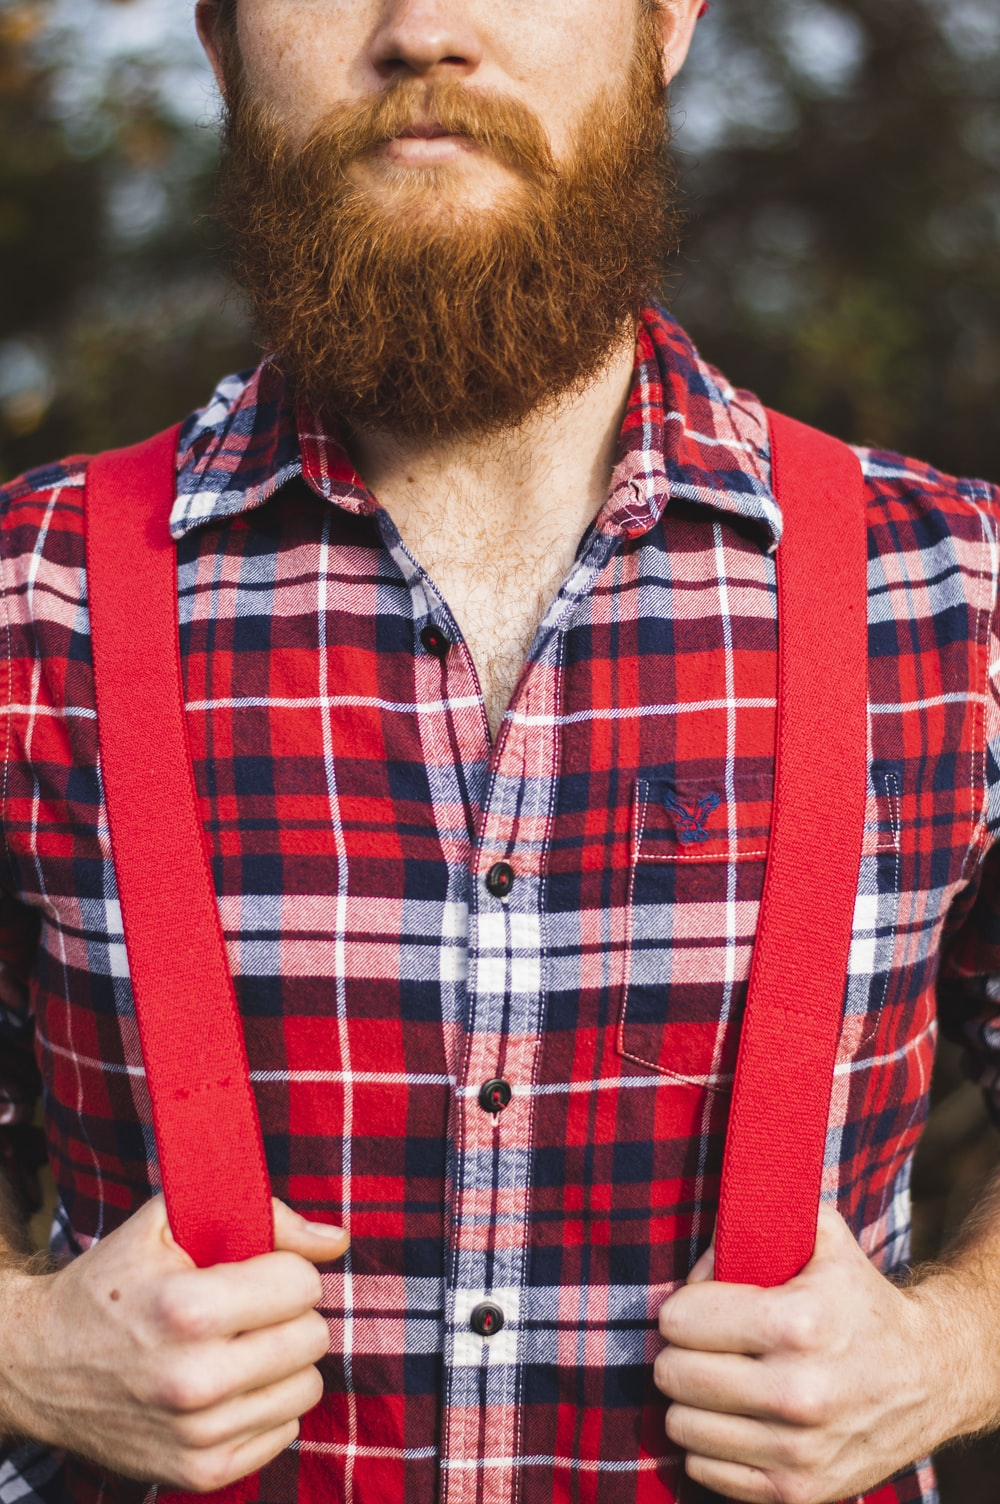 man in red, blue, and white plaid dress shirt with red suspender during daytime